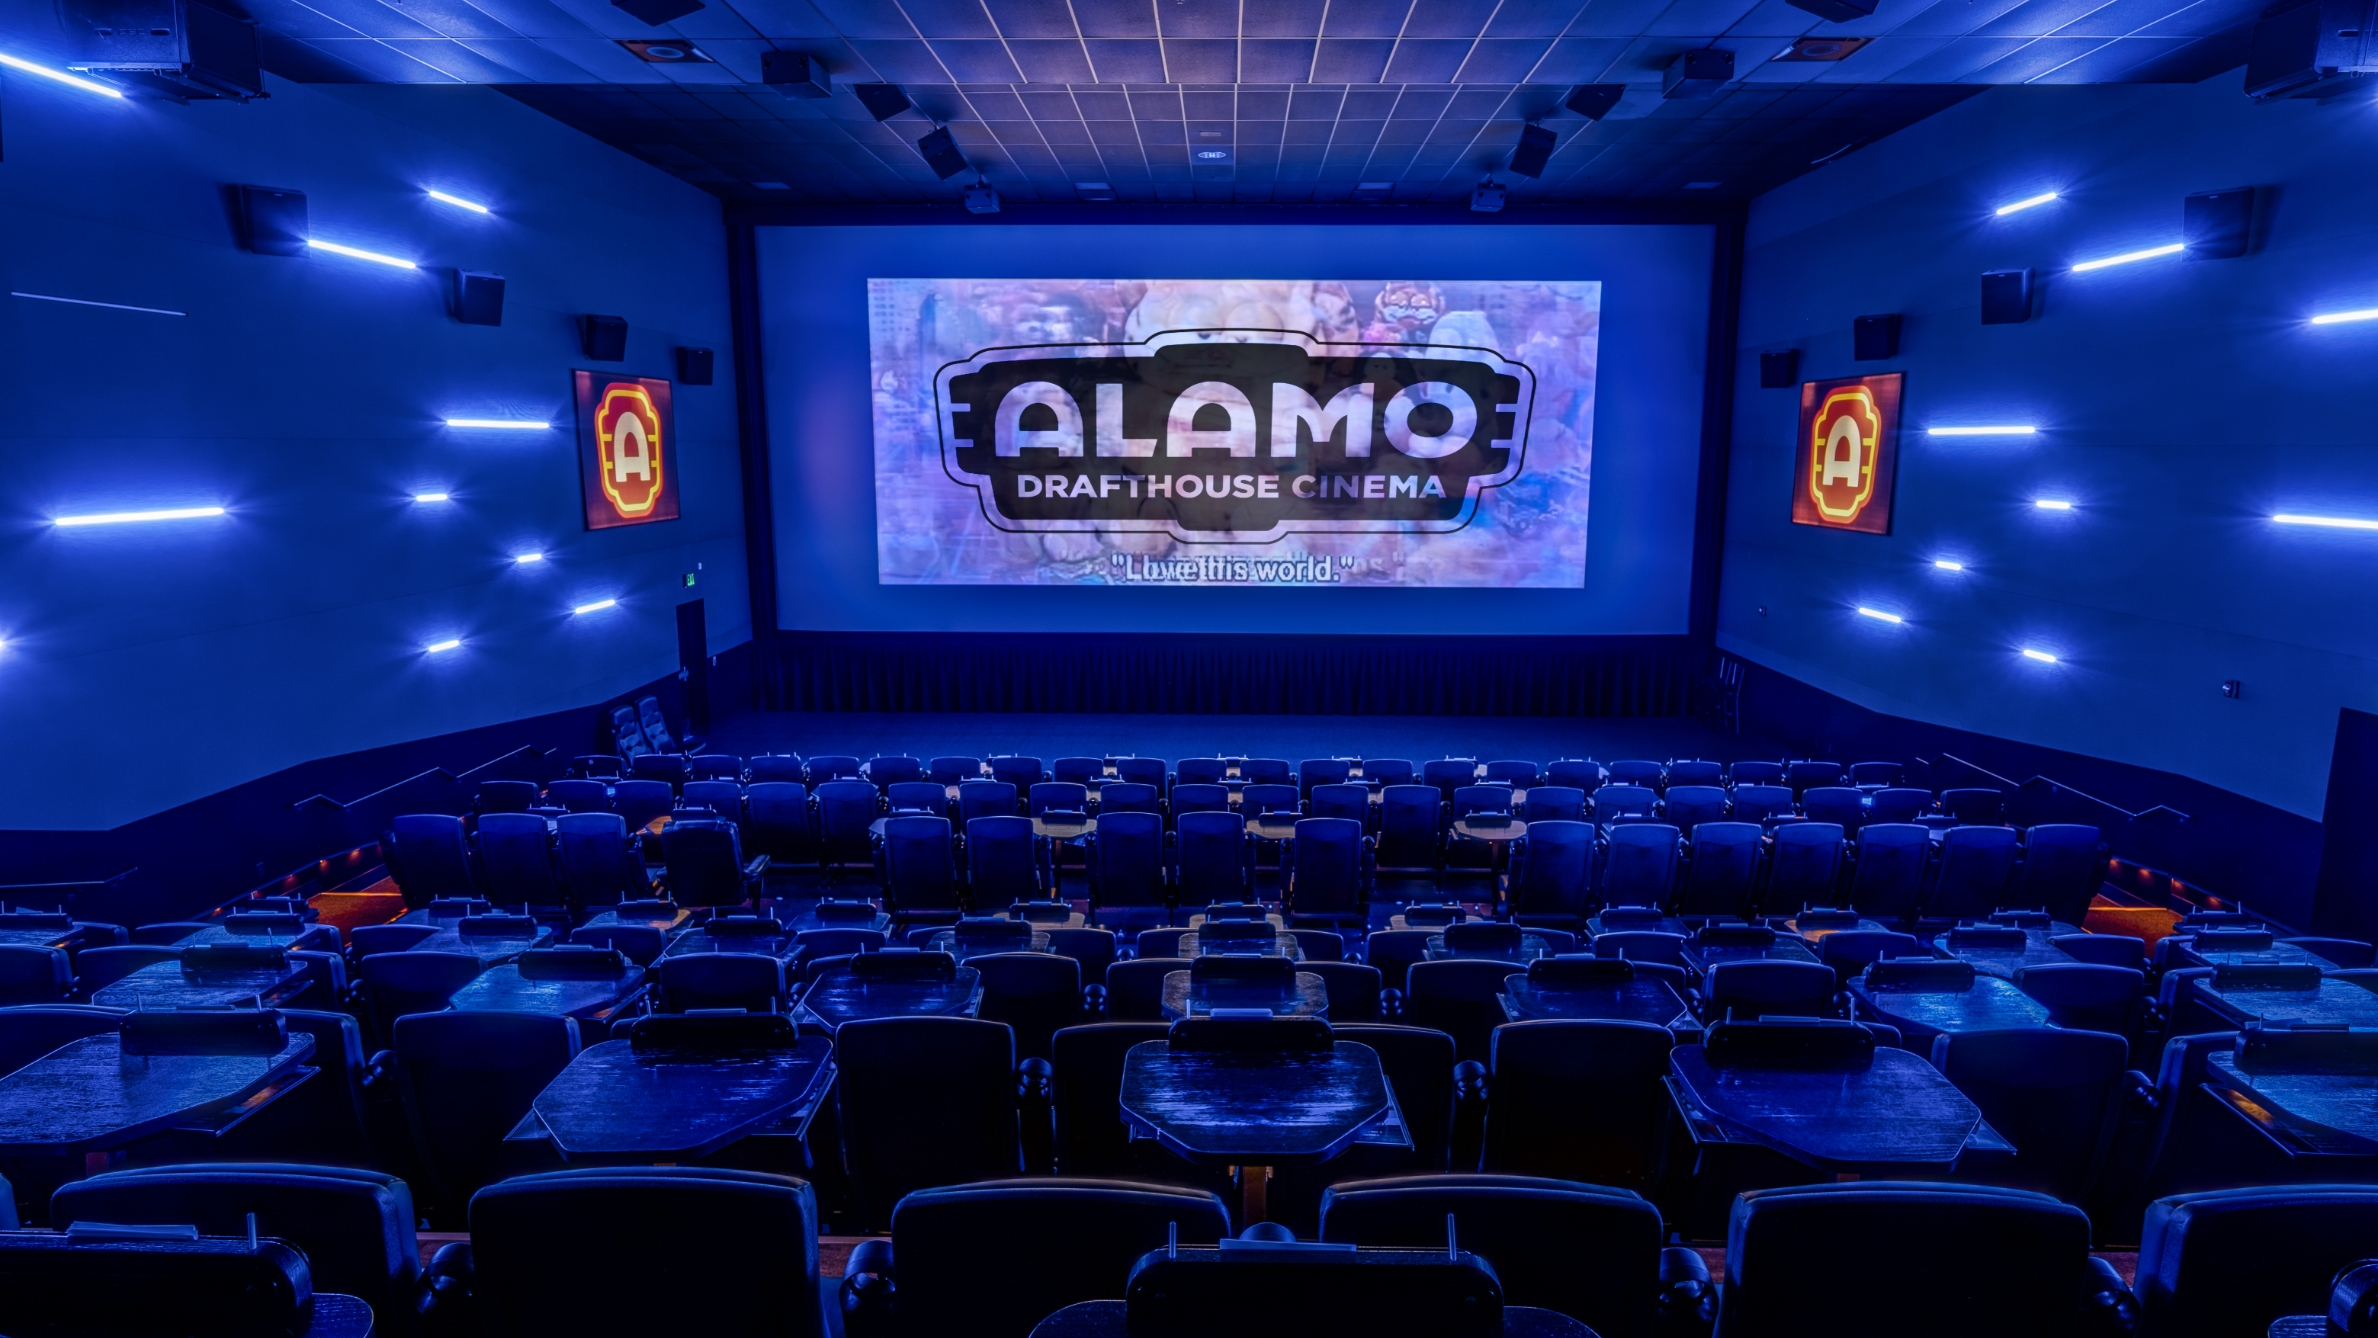 A dark theater with the Alamo Drafthouse logo projected on-screen, ready to start the show.